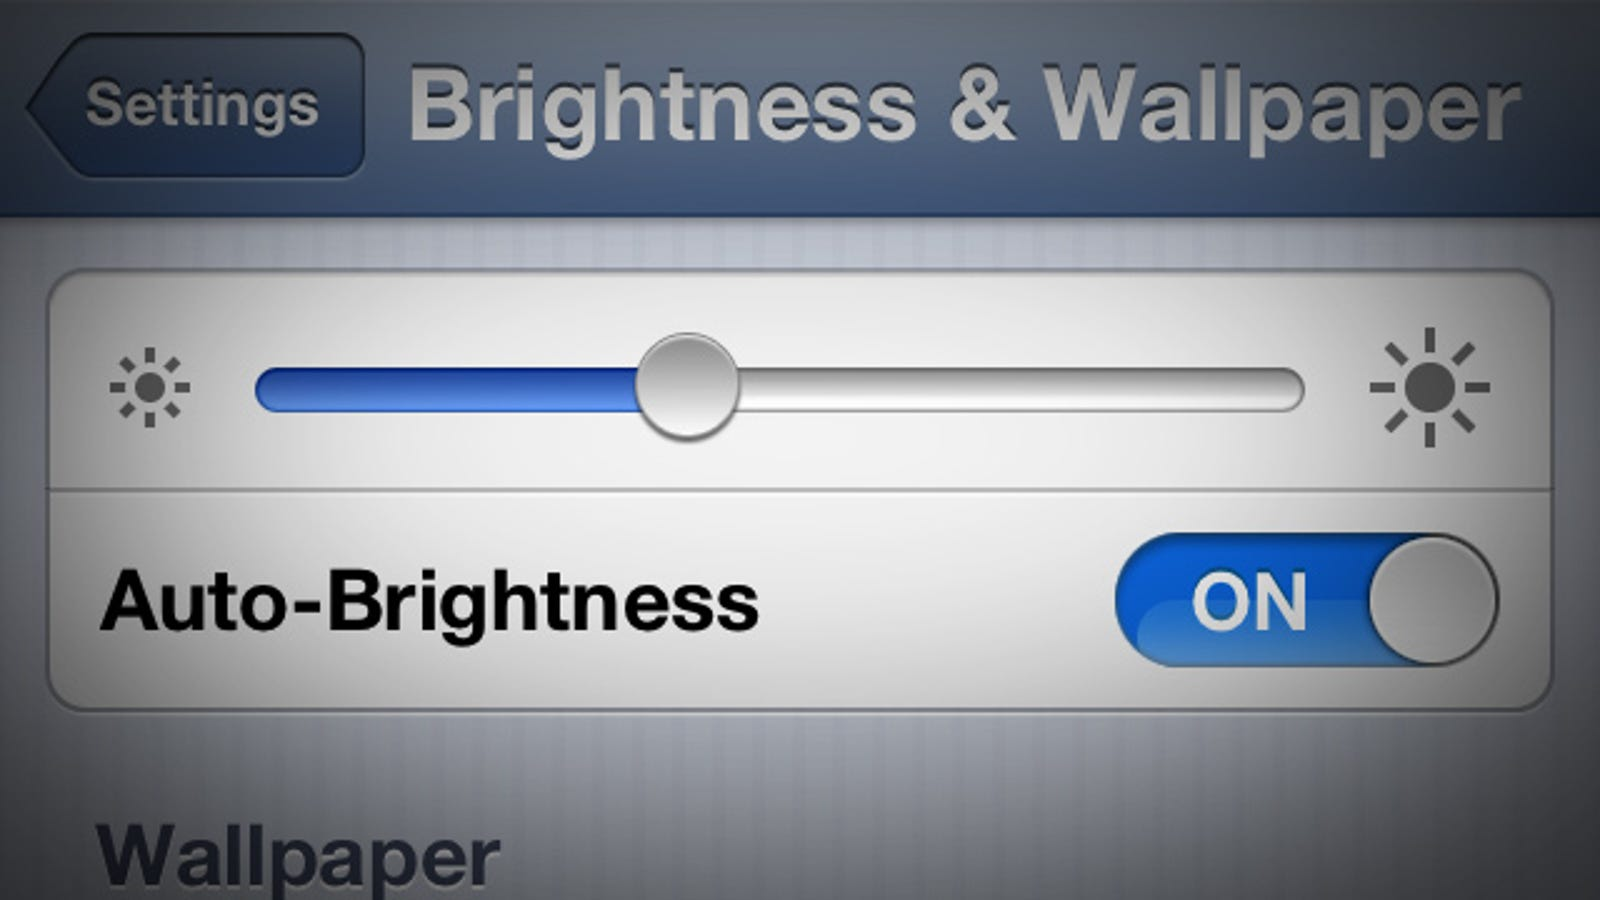 Fix Auto-Brightness Issues On the iPhone and iPad by